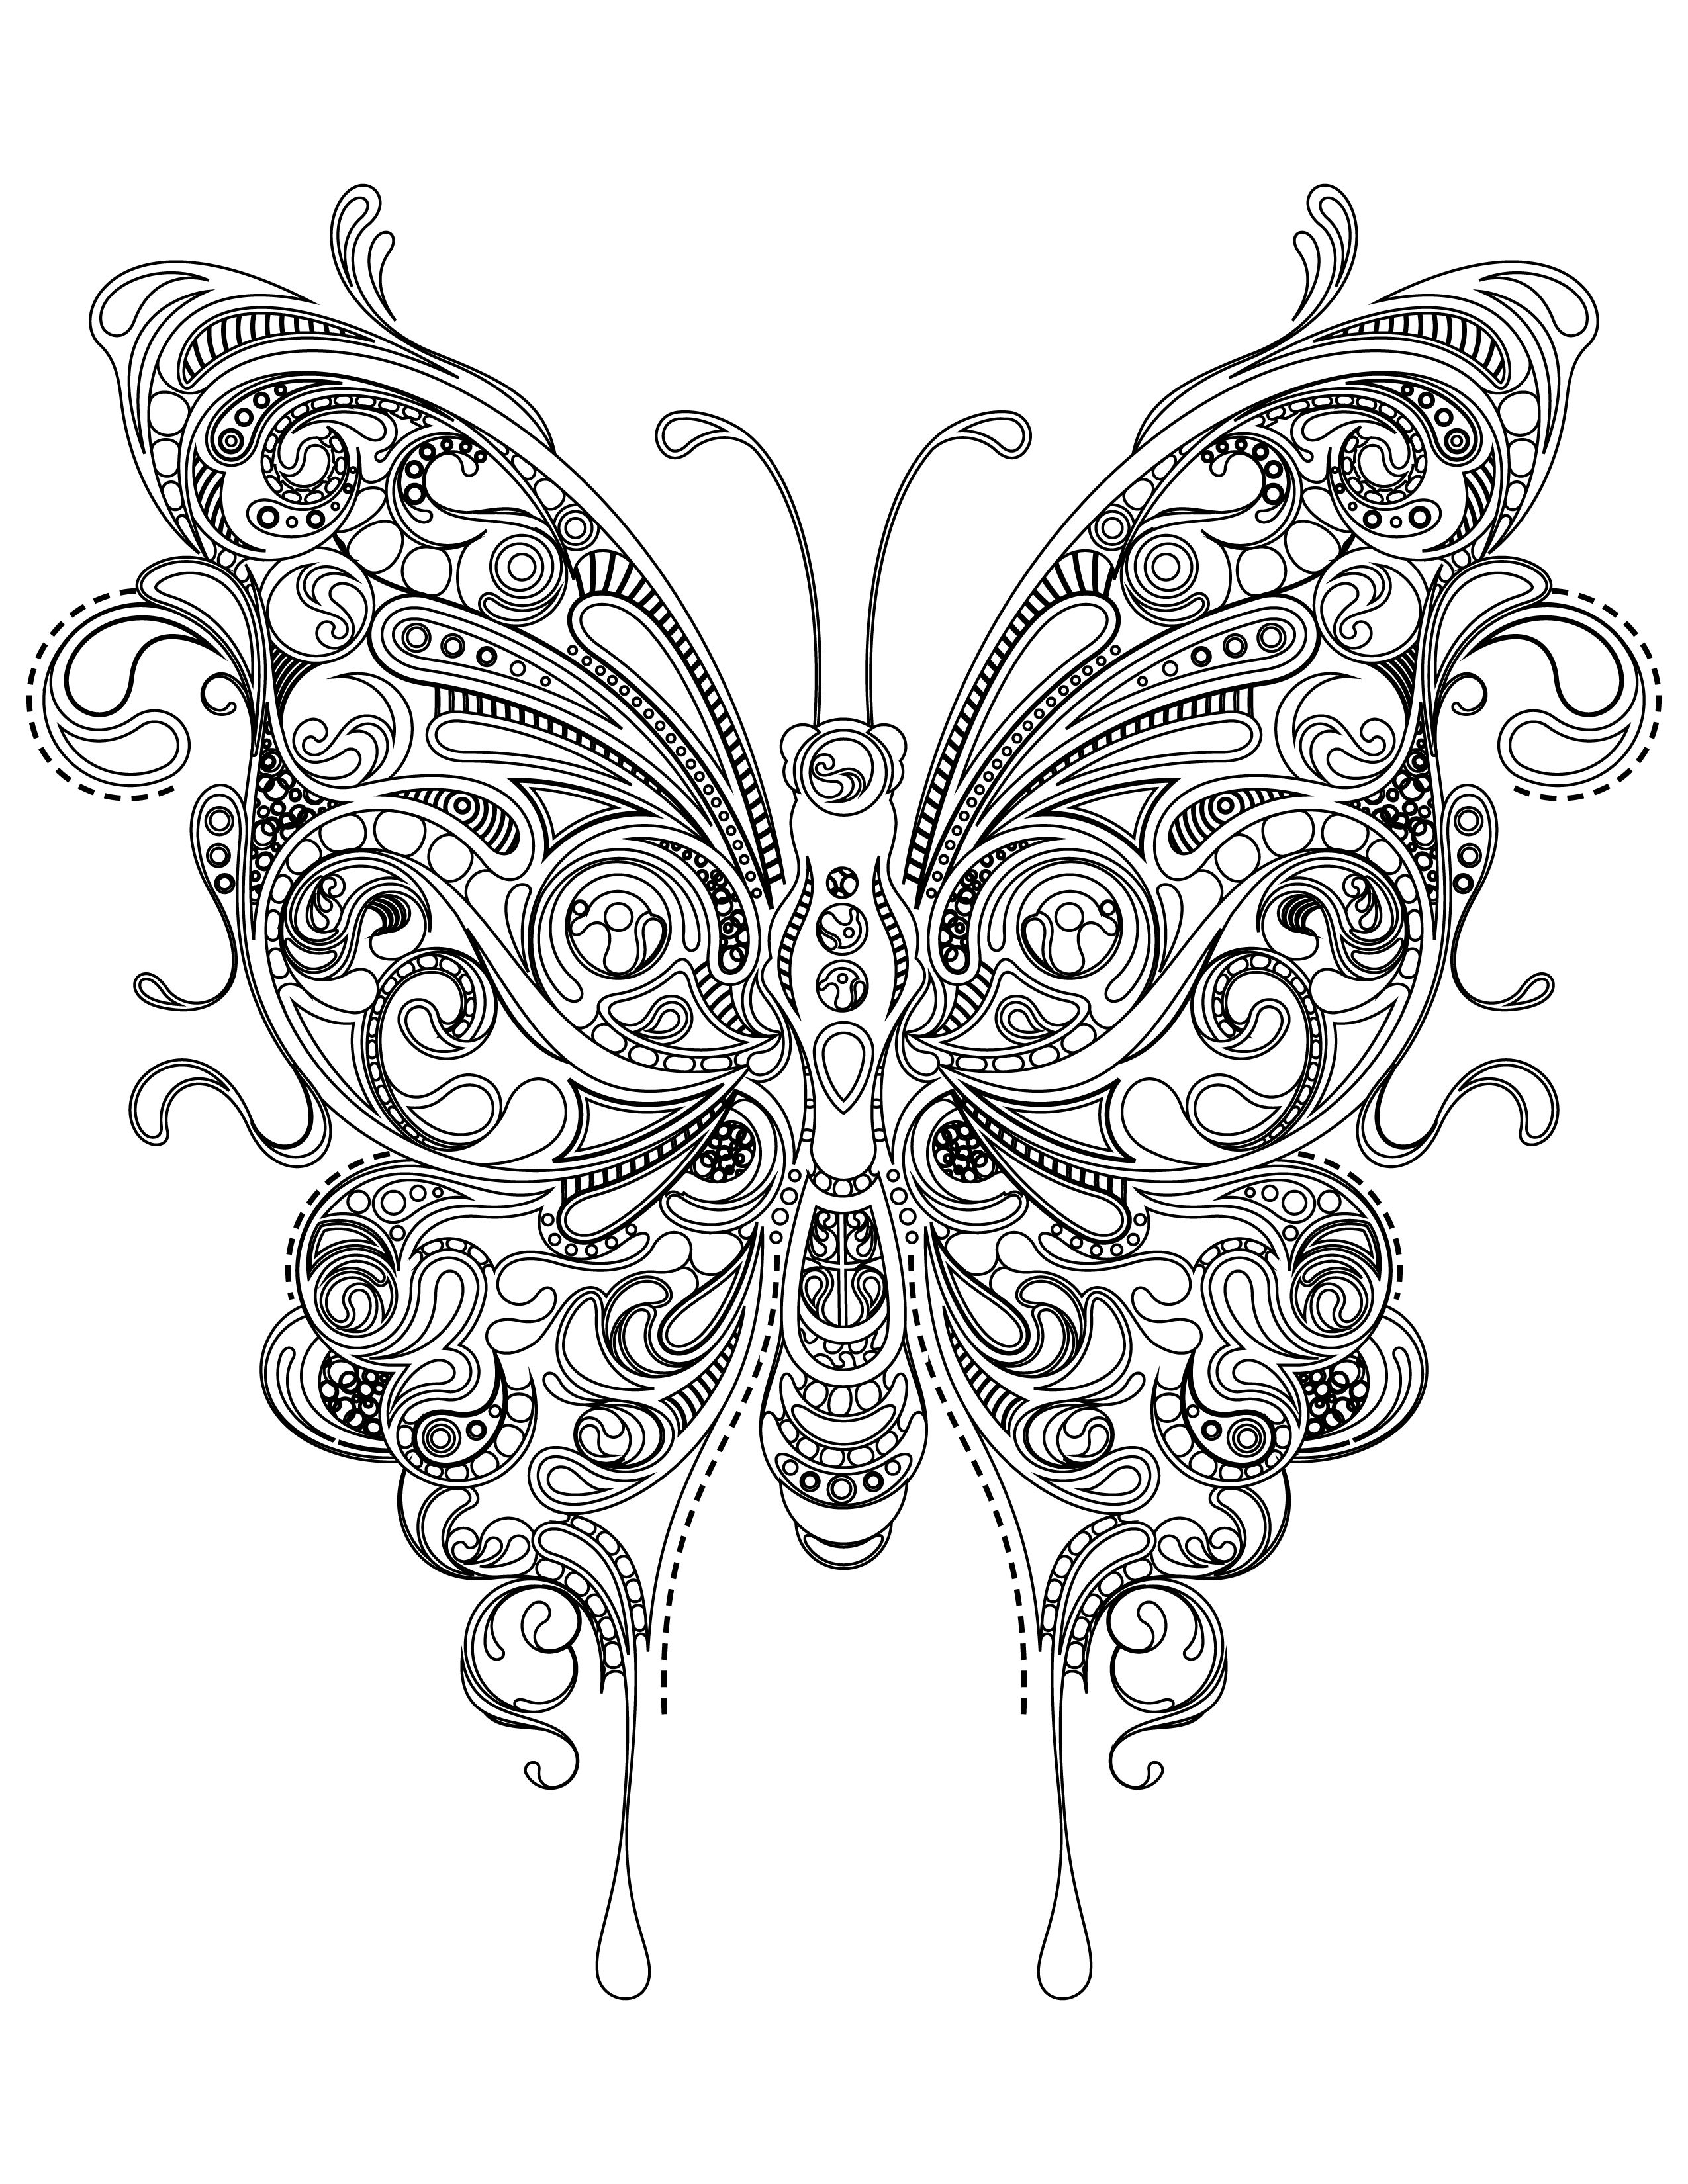 Coloriage papillon tr s difficile imprimer adult coloring butterfly and mandala - Madala a imprimer ...